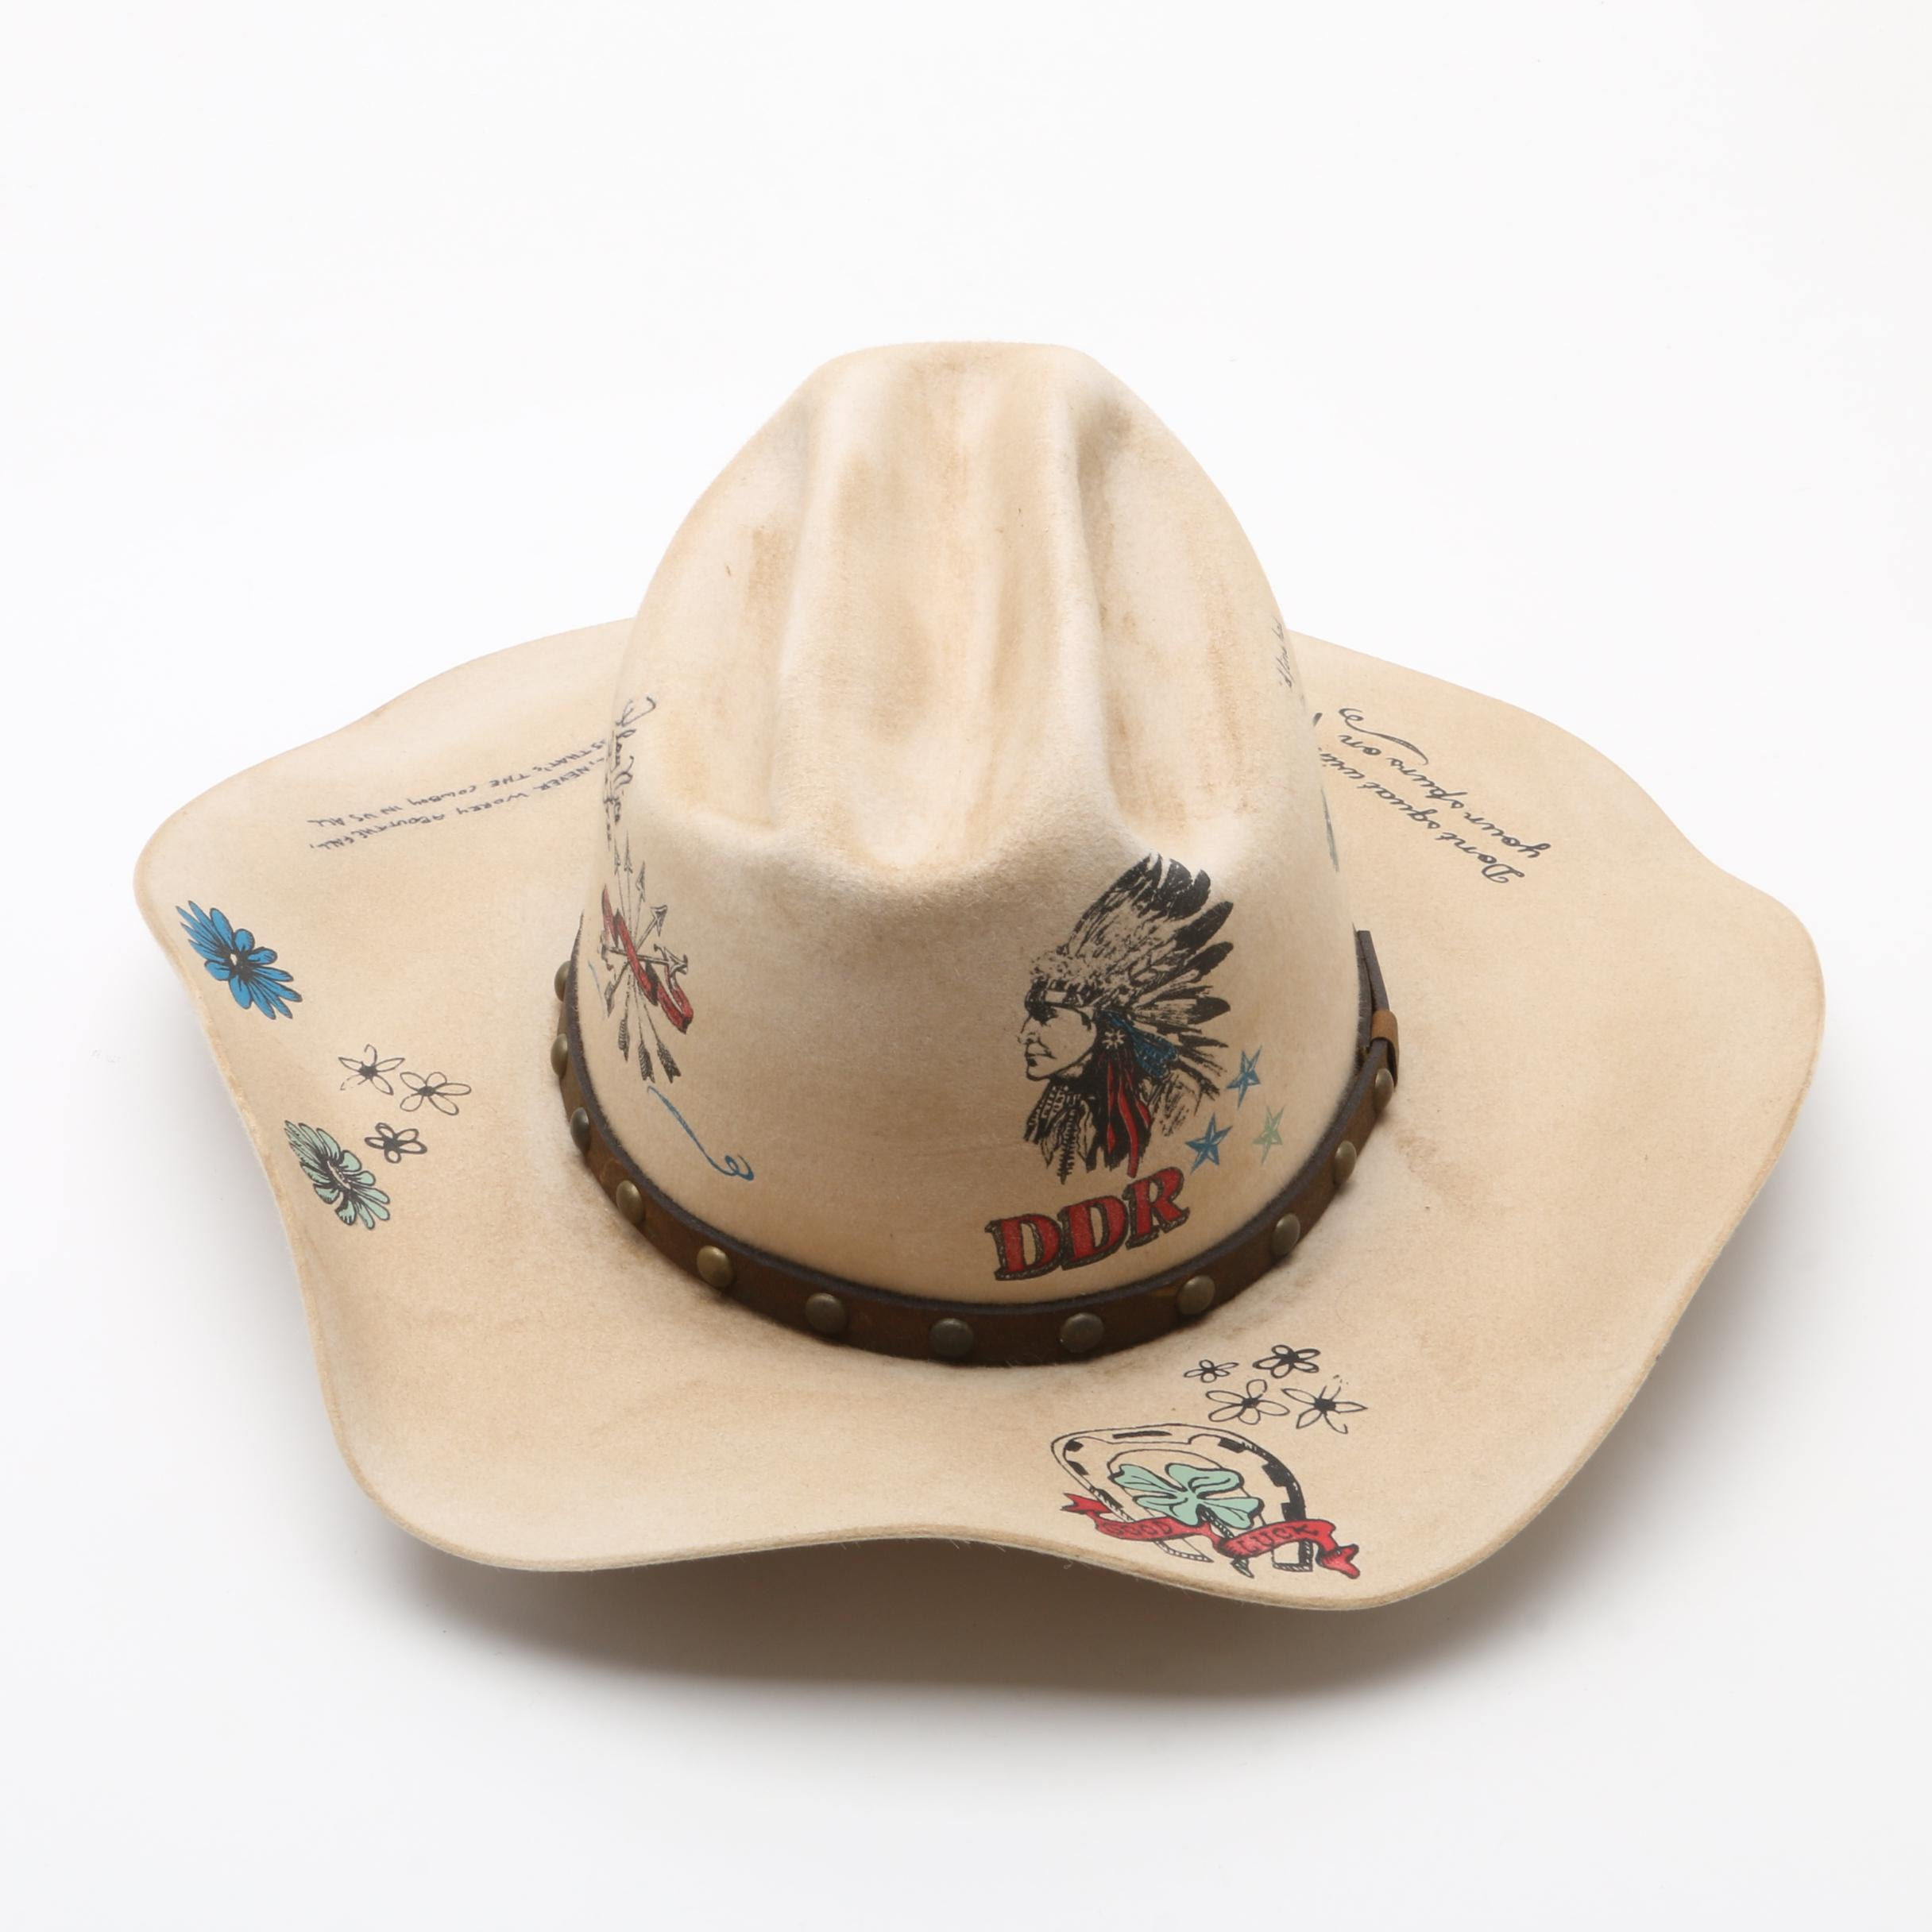 Double D Ranch Bench Made Cowgirl Hat by Greeley Hat Works